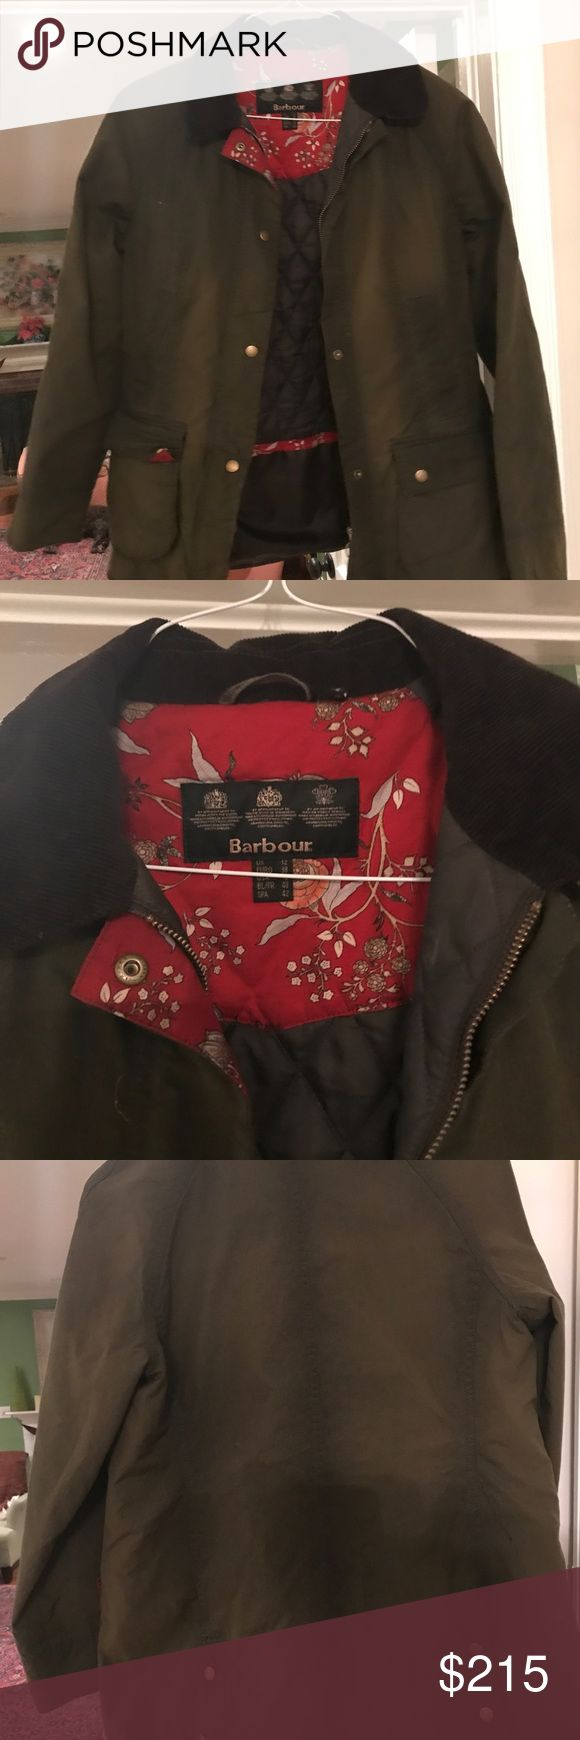 Barbour Catherine Waxed Jacket Great condition. Worn a few times. Great jacket. Can't beat this. Barbour Catherine Wax Jacket. Floral print inside. Olive green. US size 8 UK size 12 Barbour Jackets & Coats